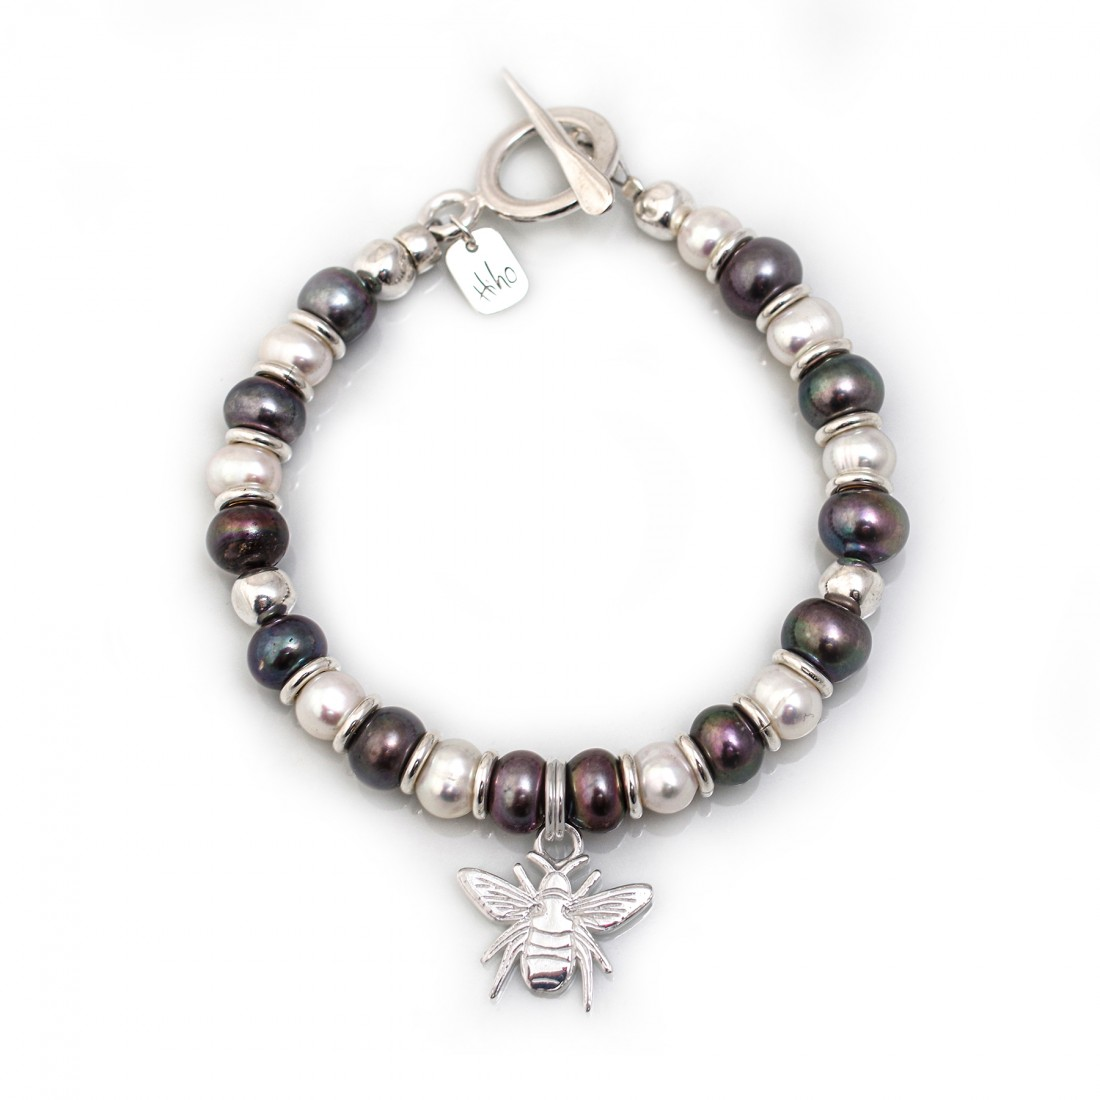 Exclusive Sterling Silver & Freshwater Pearl Bracelet With Bee Charm